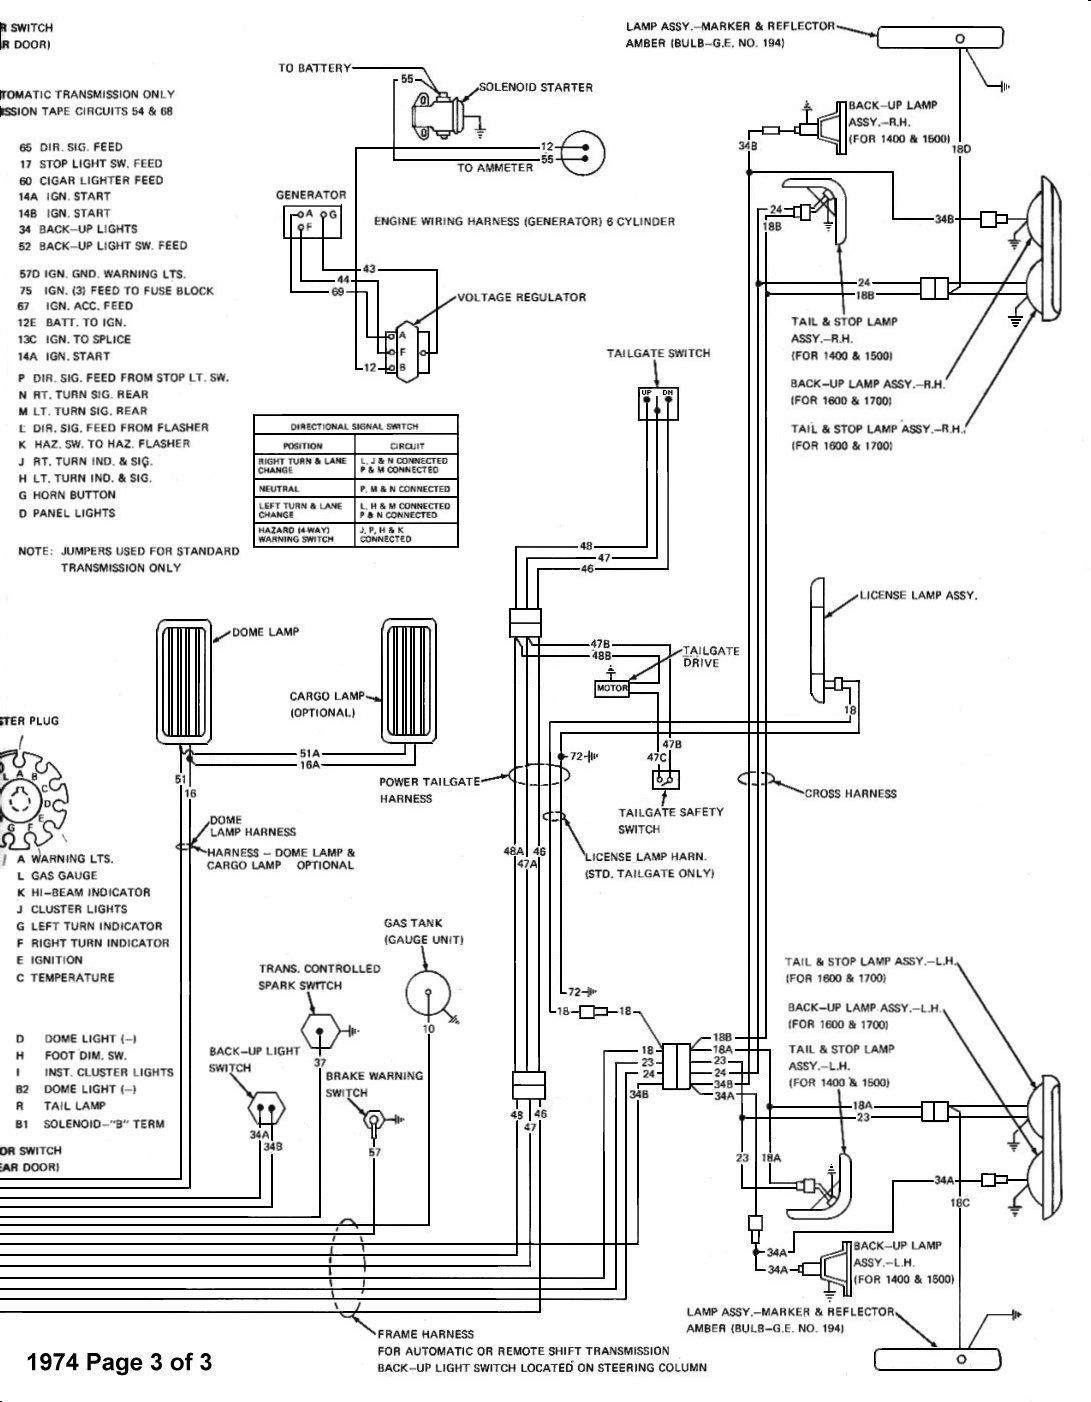 2001 Jeep Cherokee Blower Motor Wiring Library 1998 Schematic Cpm 96 Diagram Fuse International Rh Pinterest Com 1996